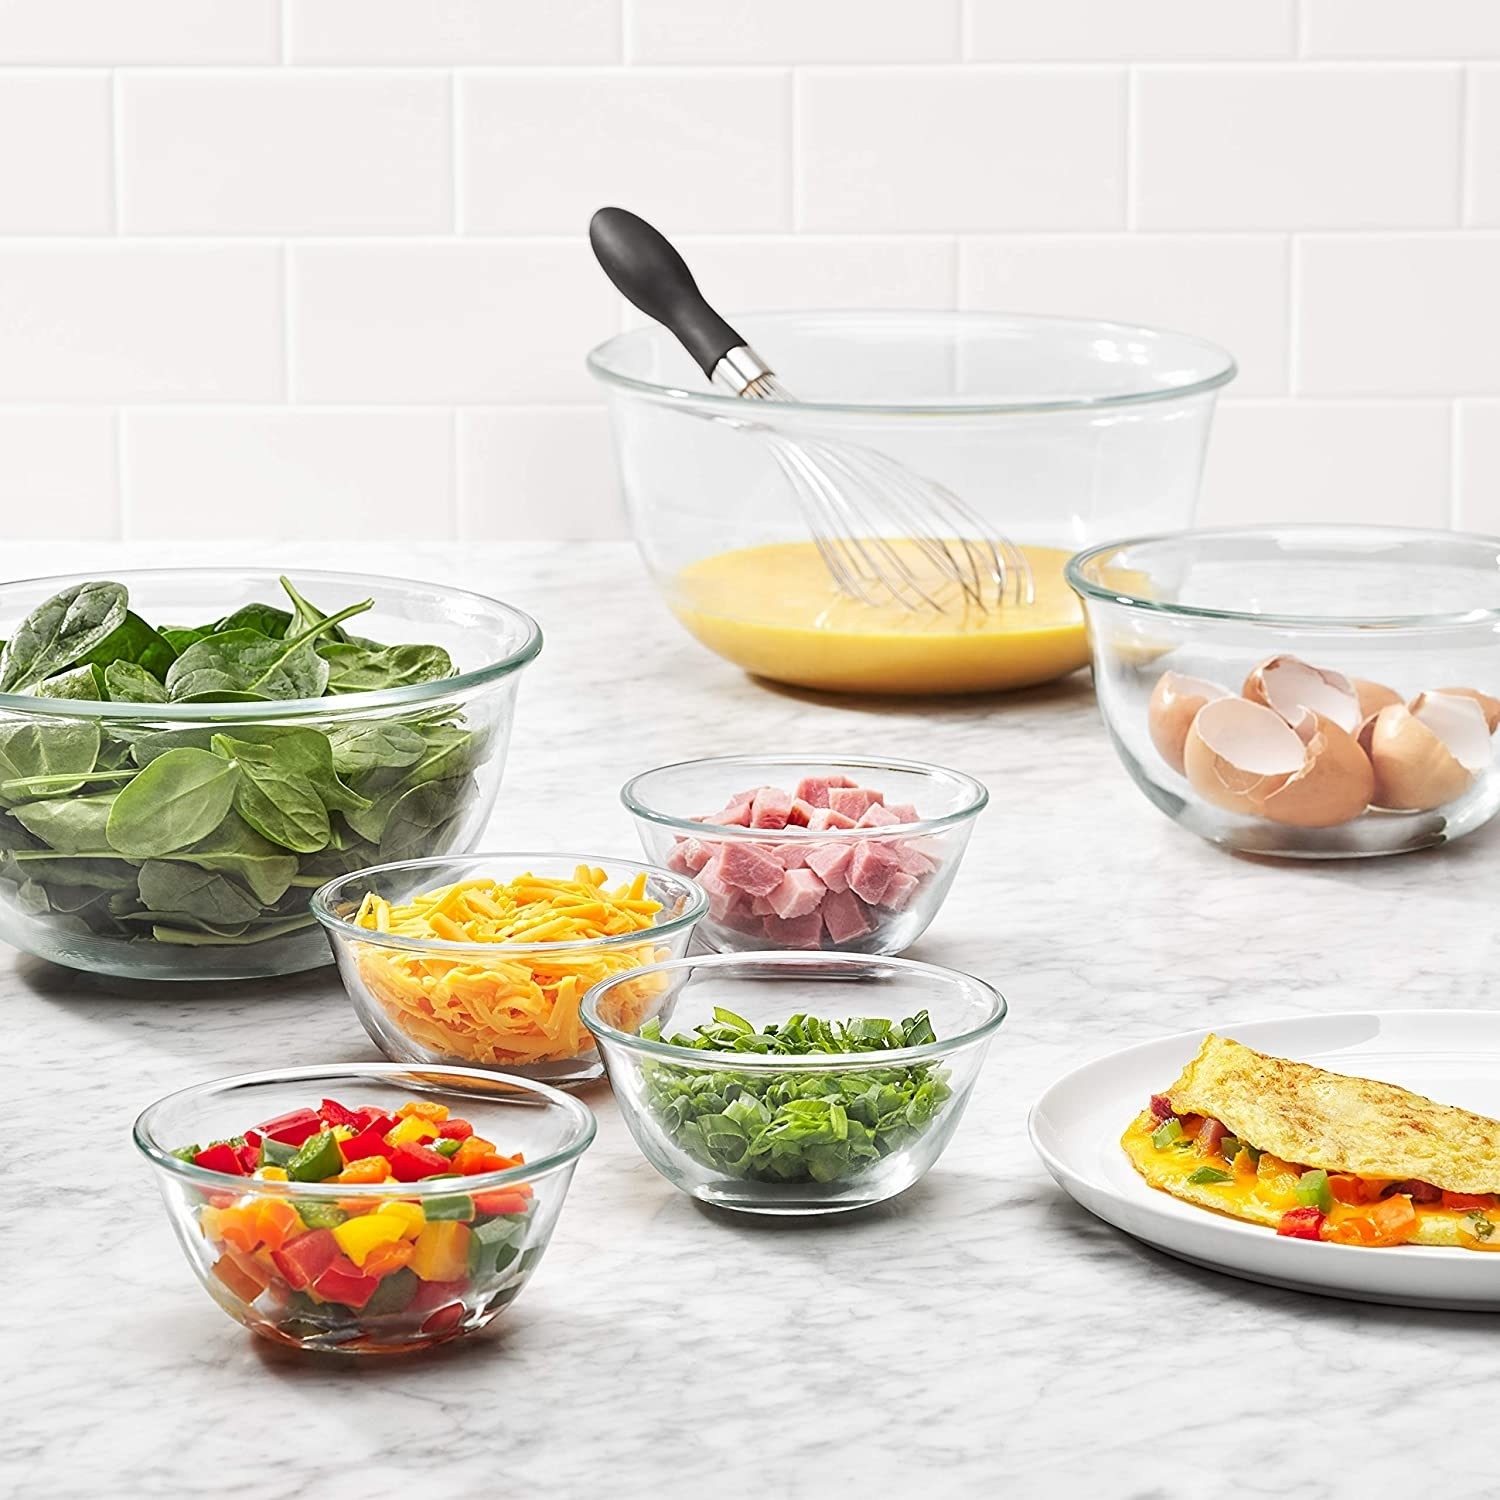 The bowls in an omelet prep station, each with different ingredients in them